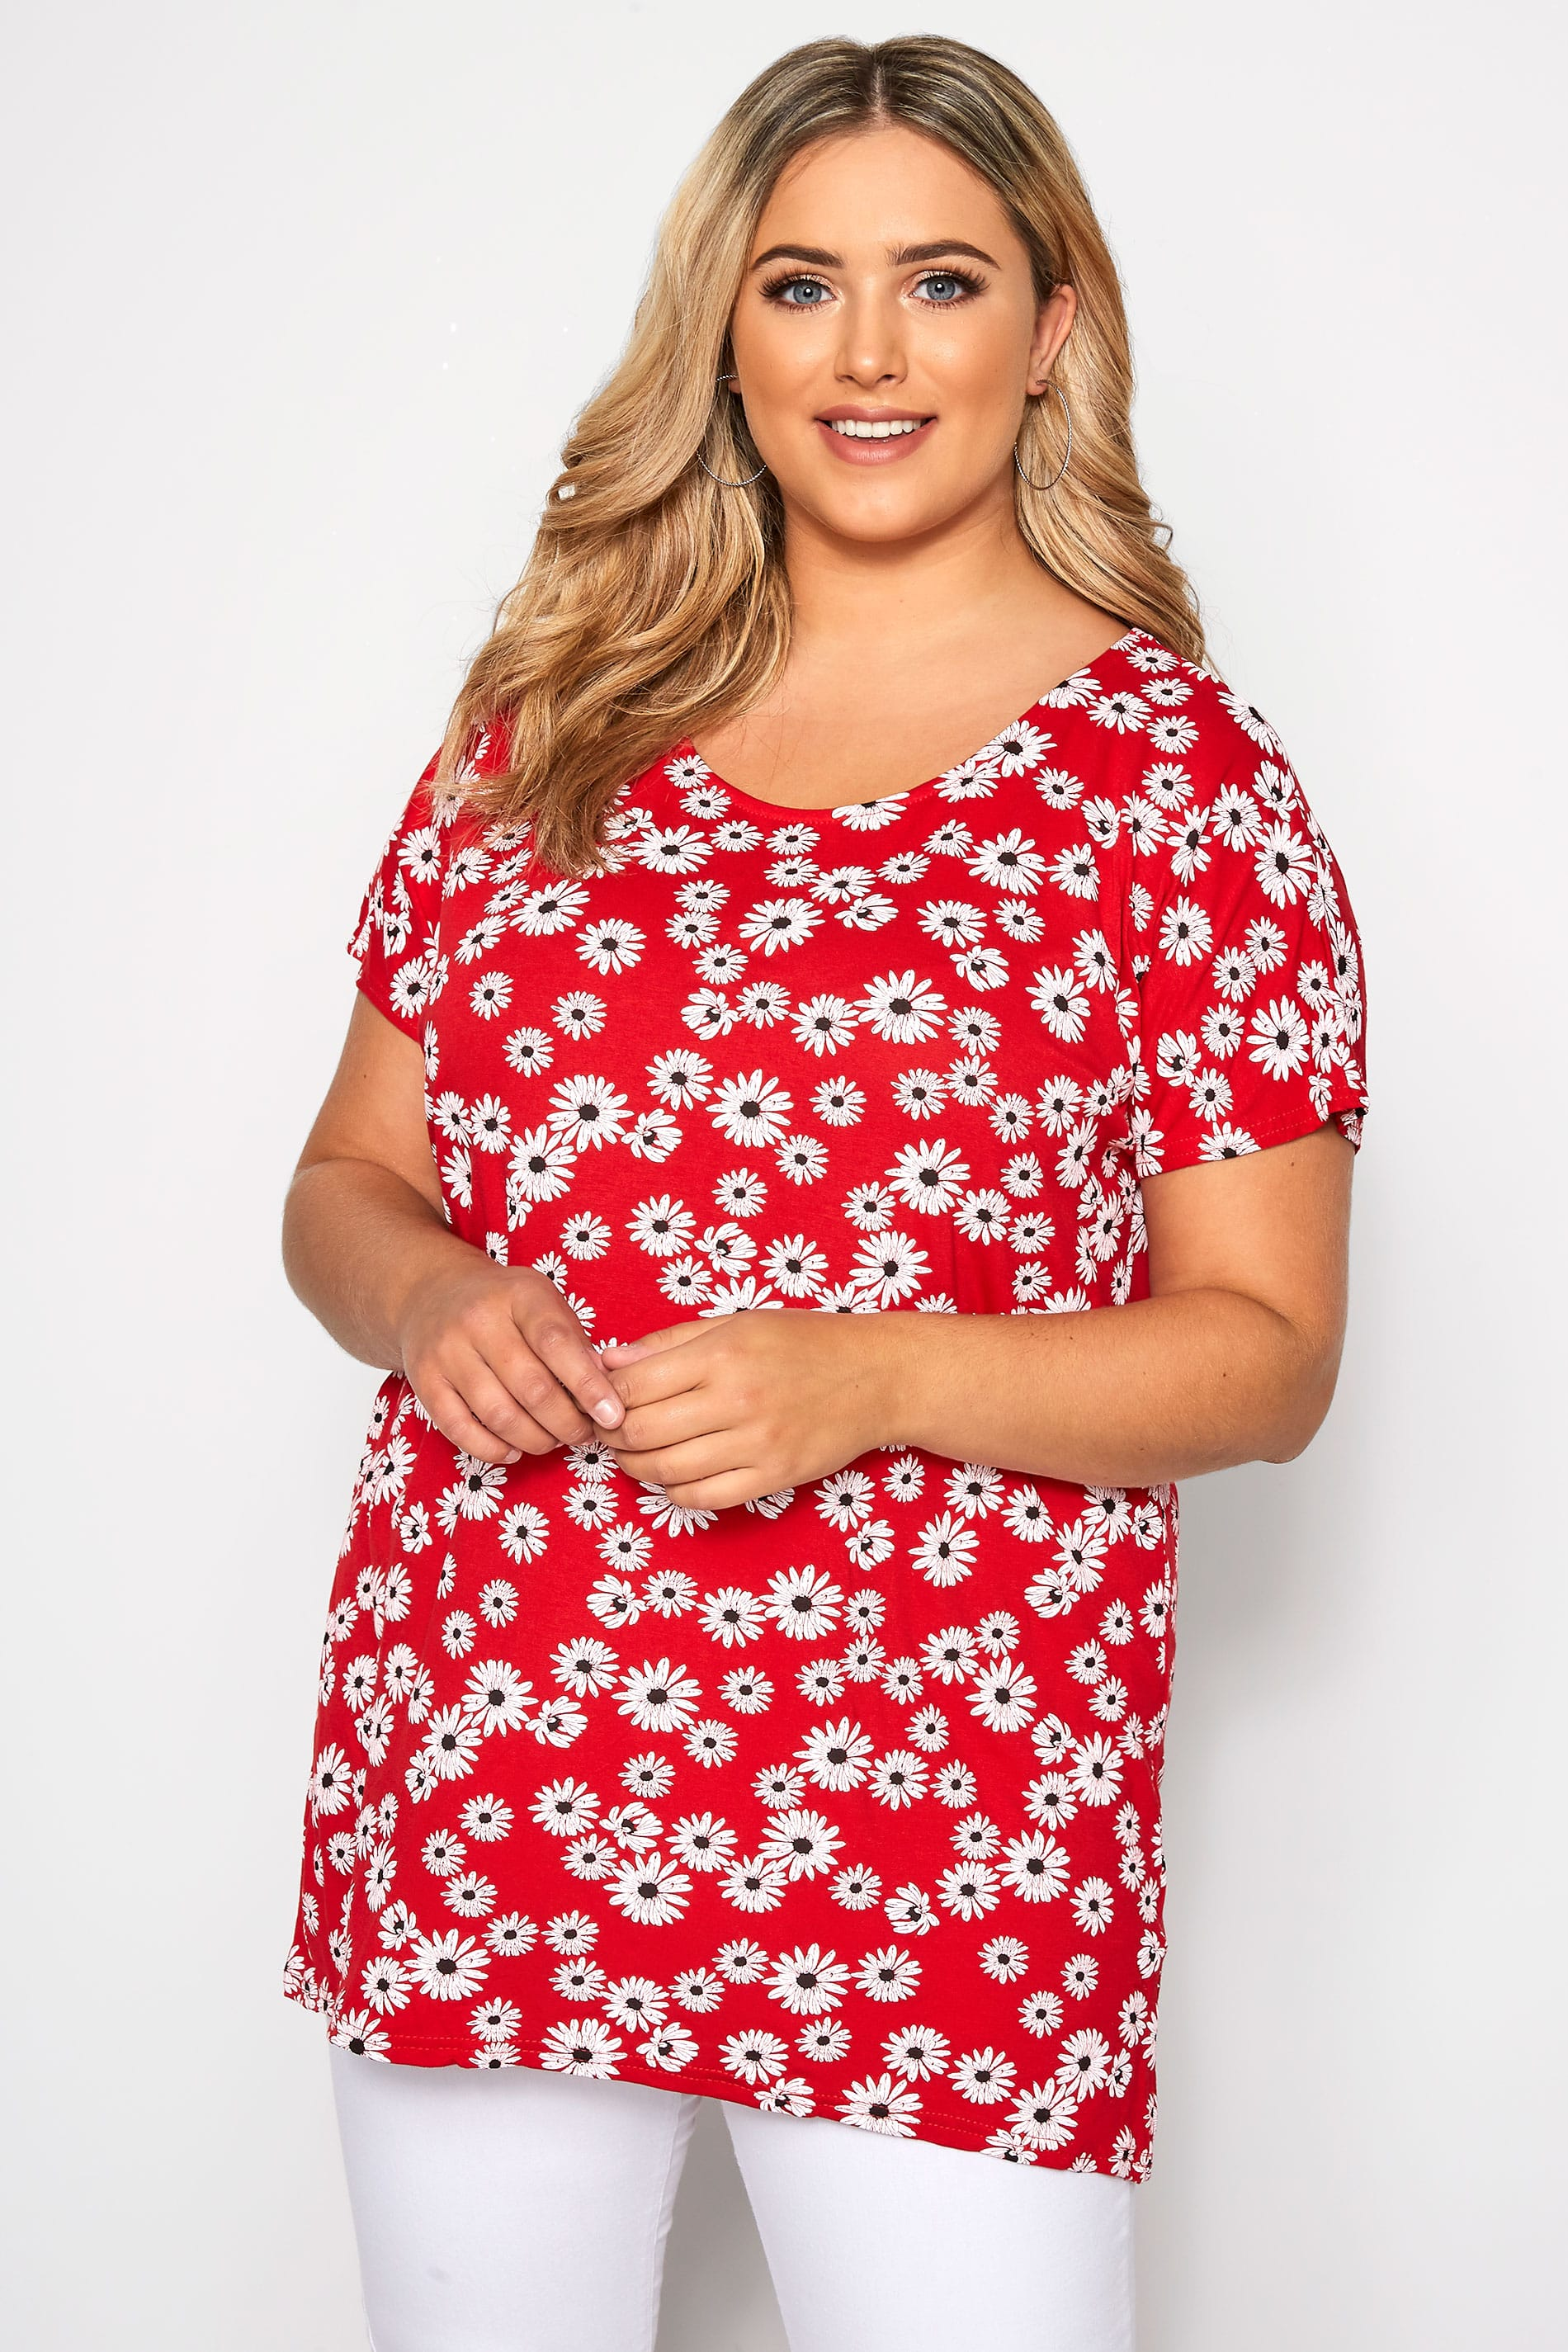 Yours Clothing Women/'s Plus Size Mustard Daisy Dipped Hem T-shirt